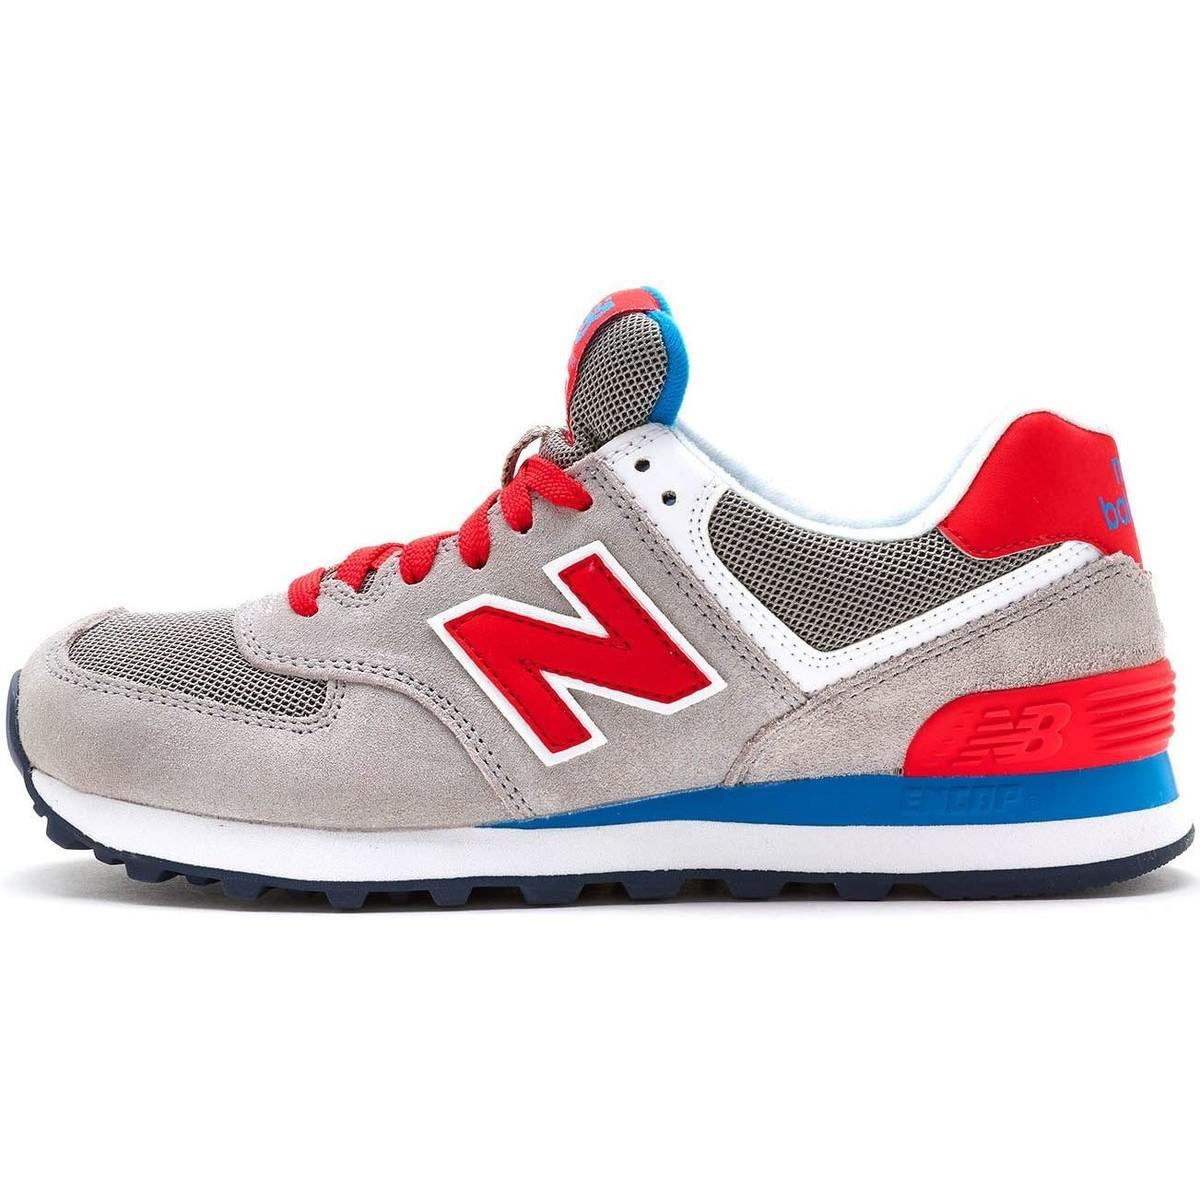 Suede Trainers In Blue 574 GreyRed New Balance Wl574 Women Retro n0wkPO